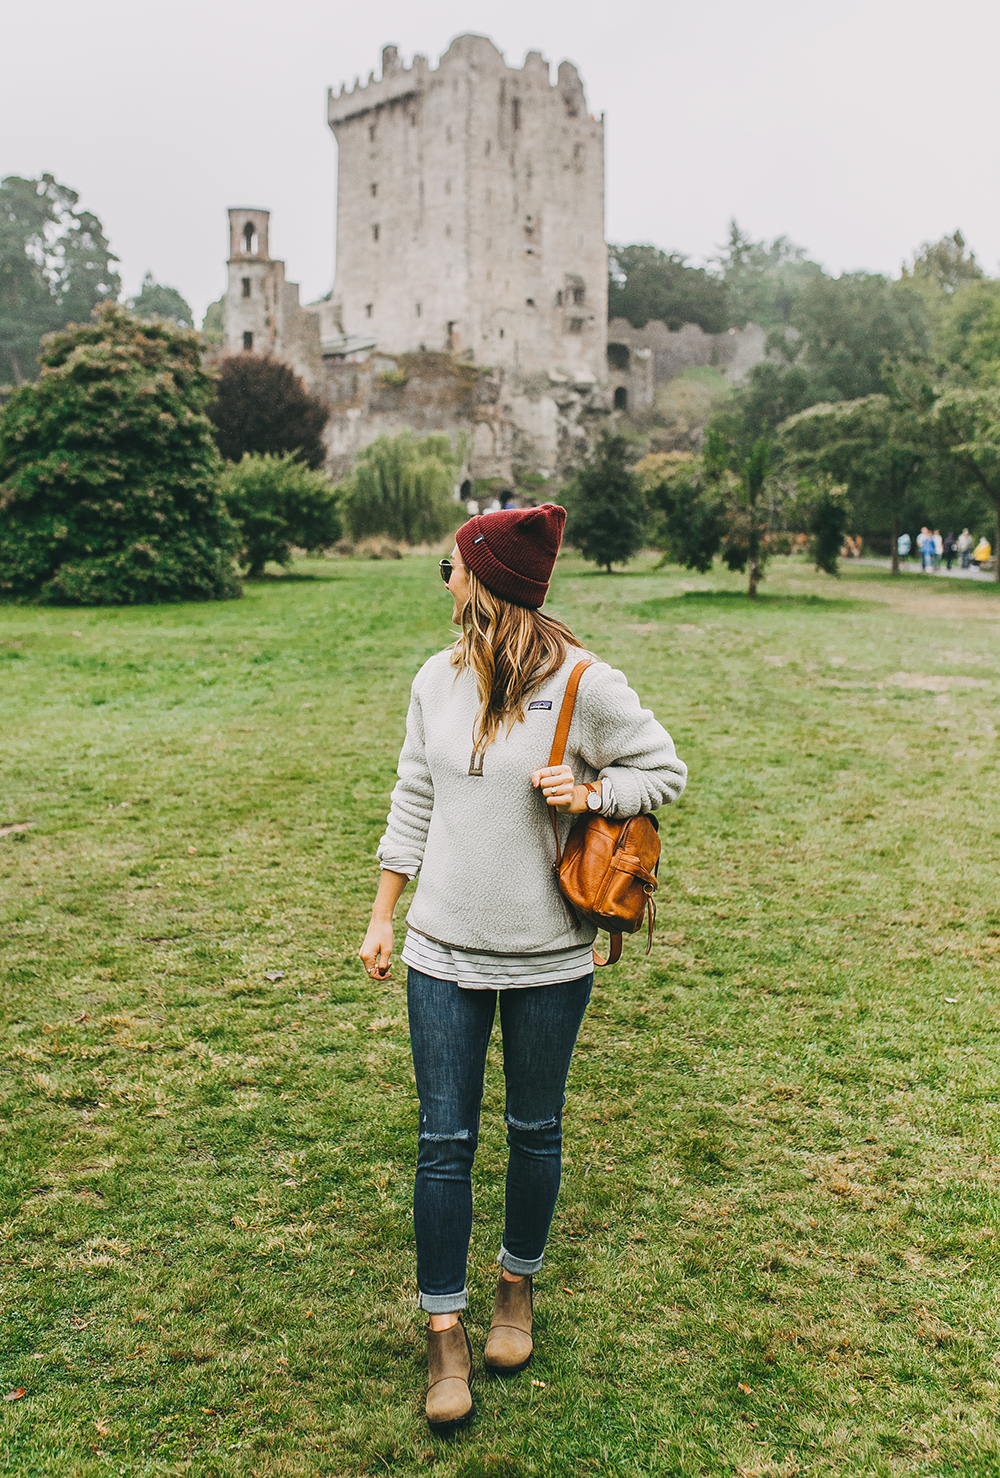 livvyland-blog-olivia-watson-austin-texas-fashion-lifestyle-travel-blogger-patagonia-retro-pile-fleece-pullover-backcountry-outfit-blarney-castle-cork-ireland-1